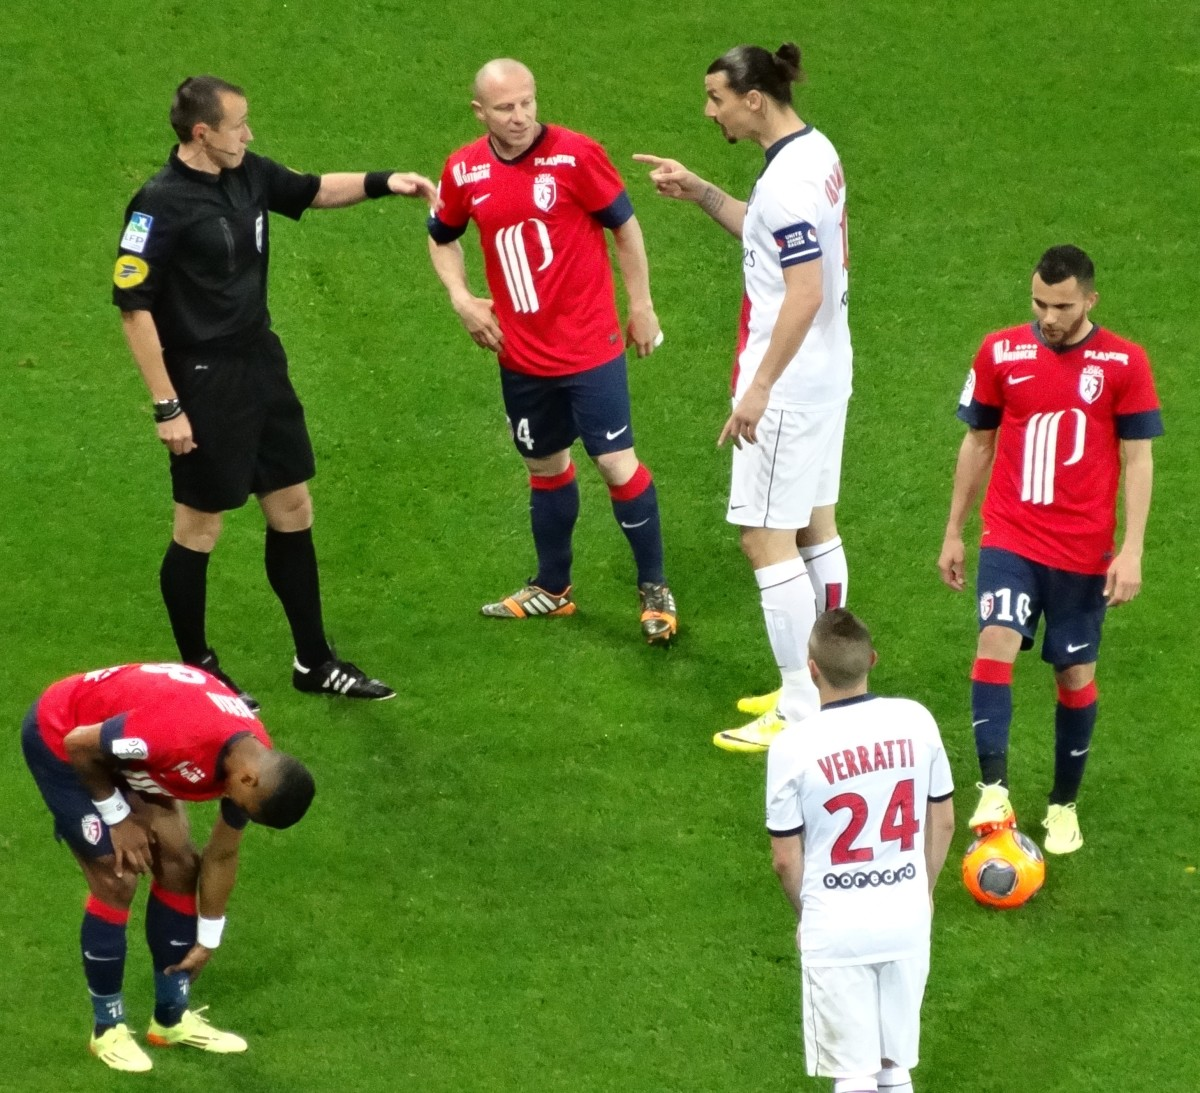 The referee may point at a player while talking with them as a warning, especially if the player is arguing.